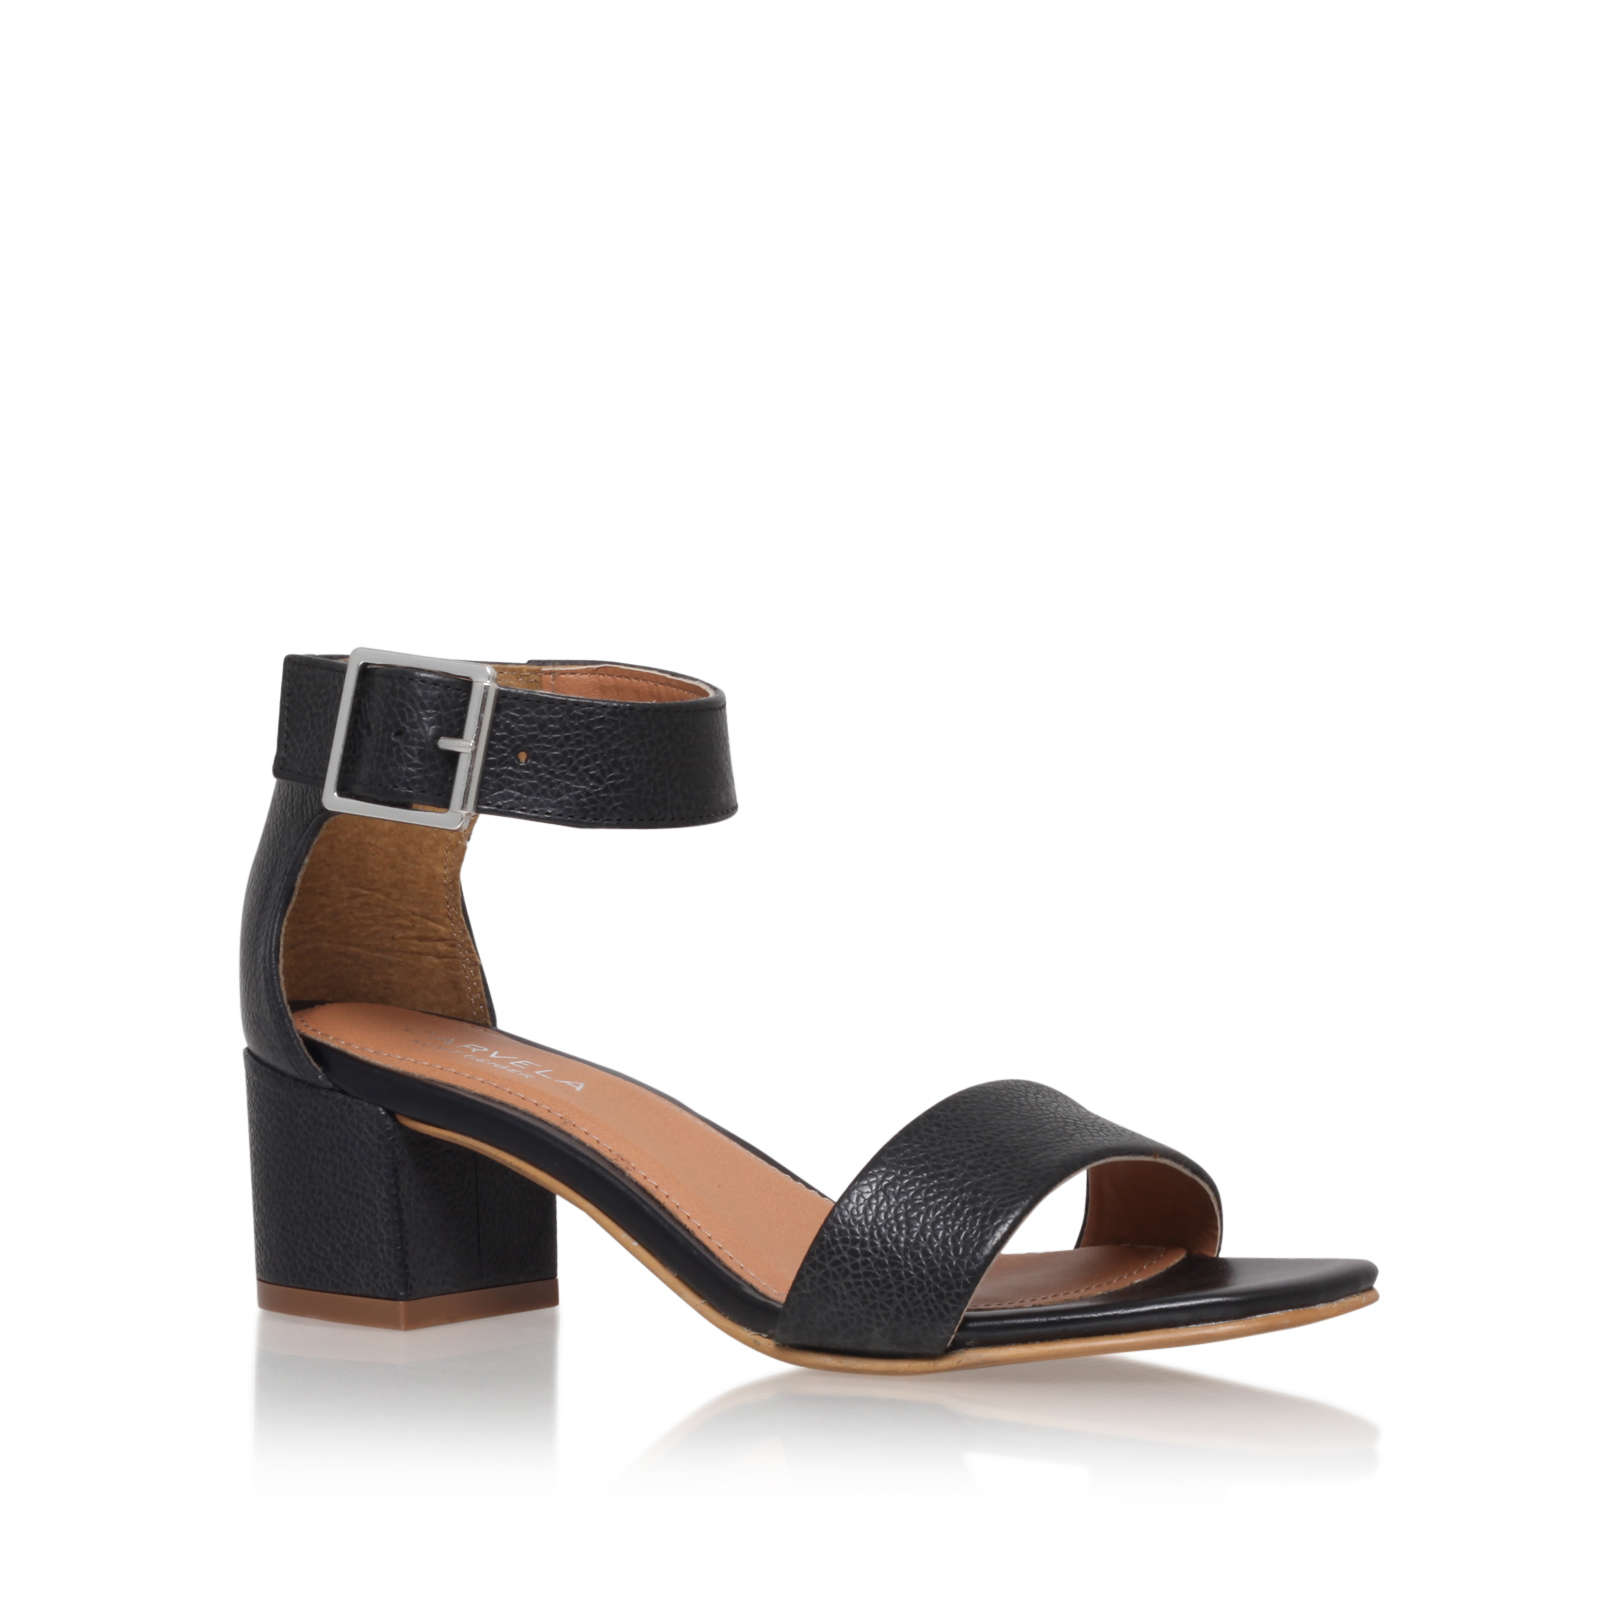 d393eb5bfb9 SHADOW Carvela Shadow Black Leather Sandals Block Heel by CARVELA